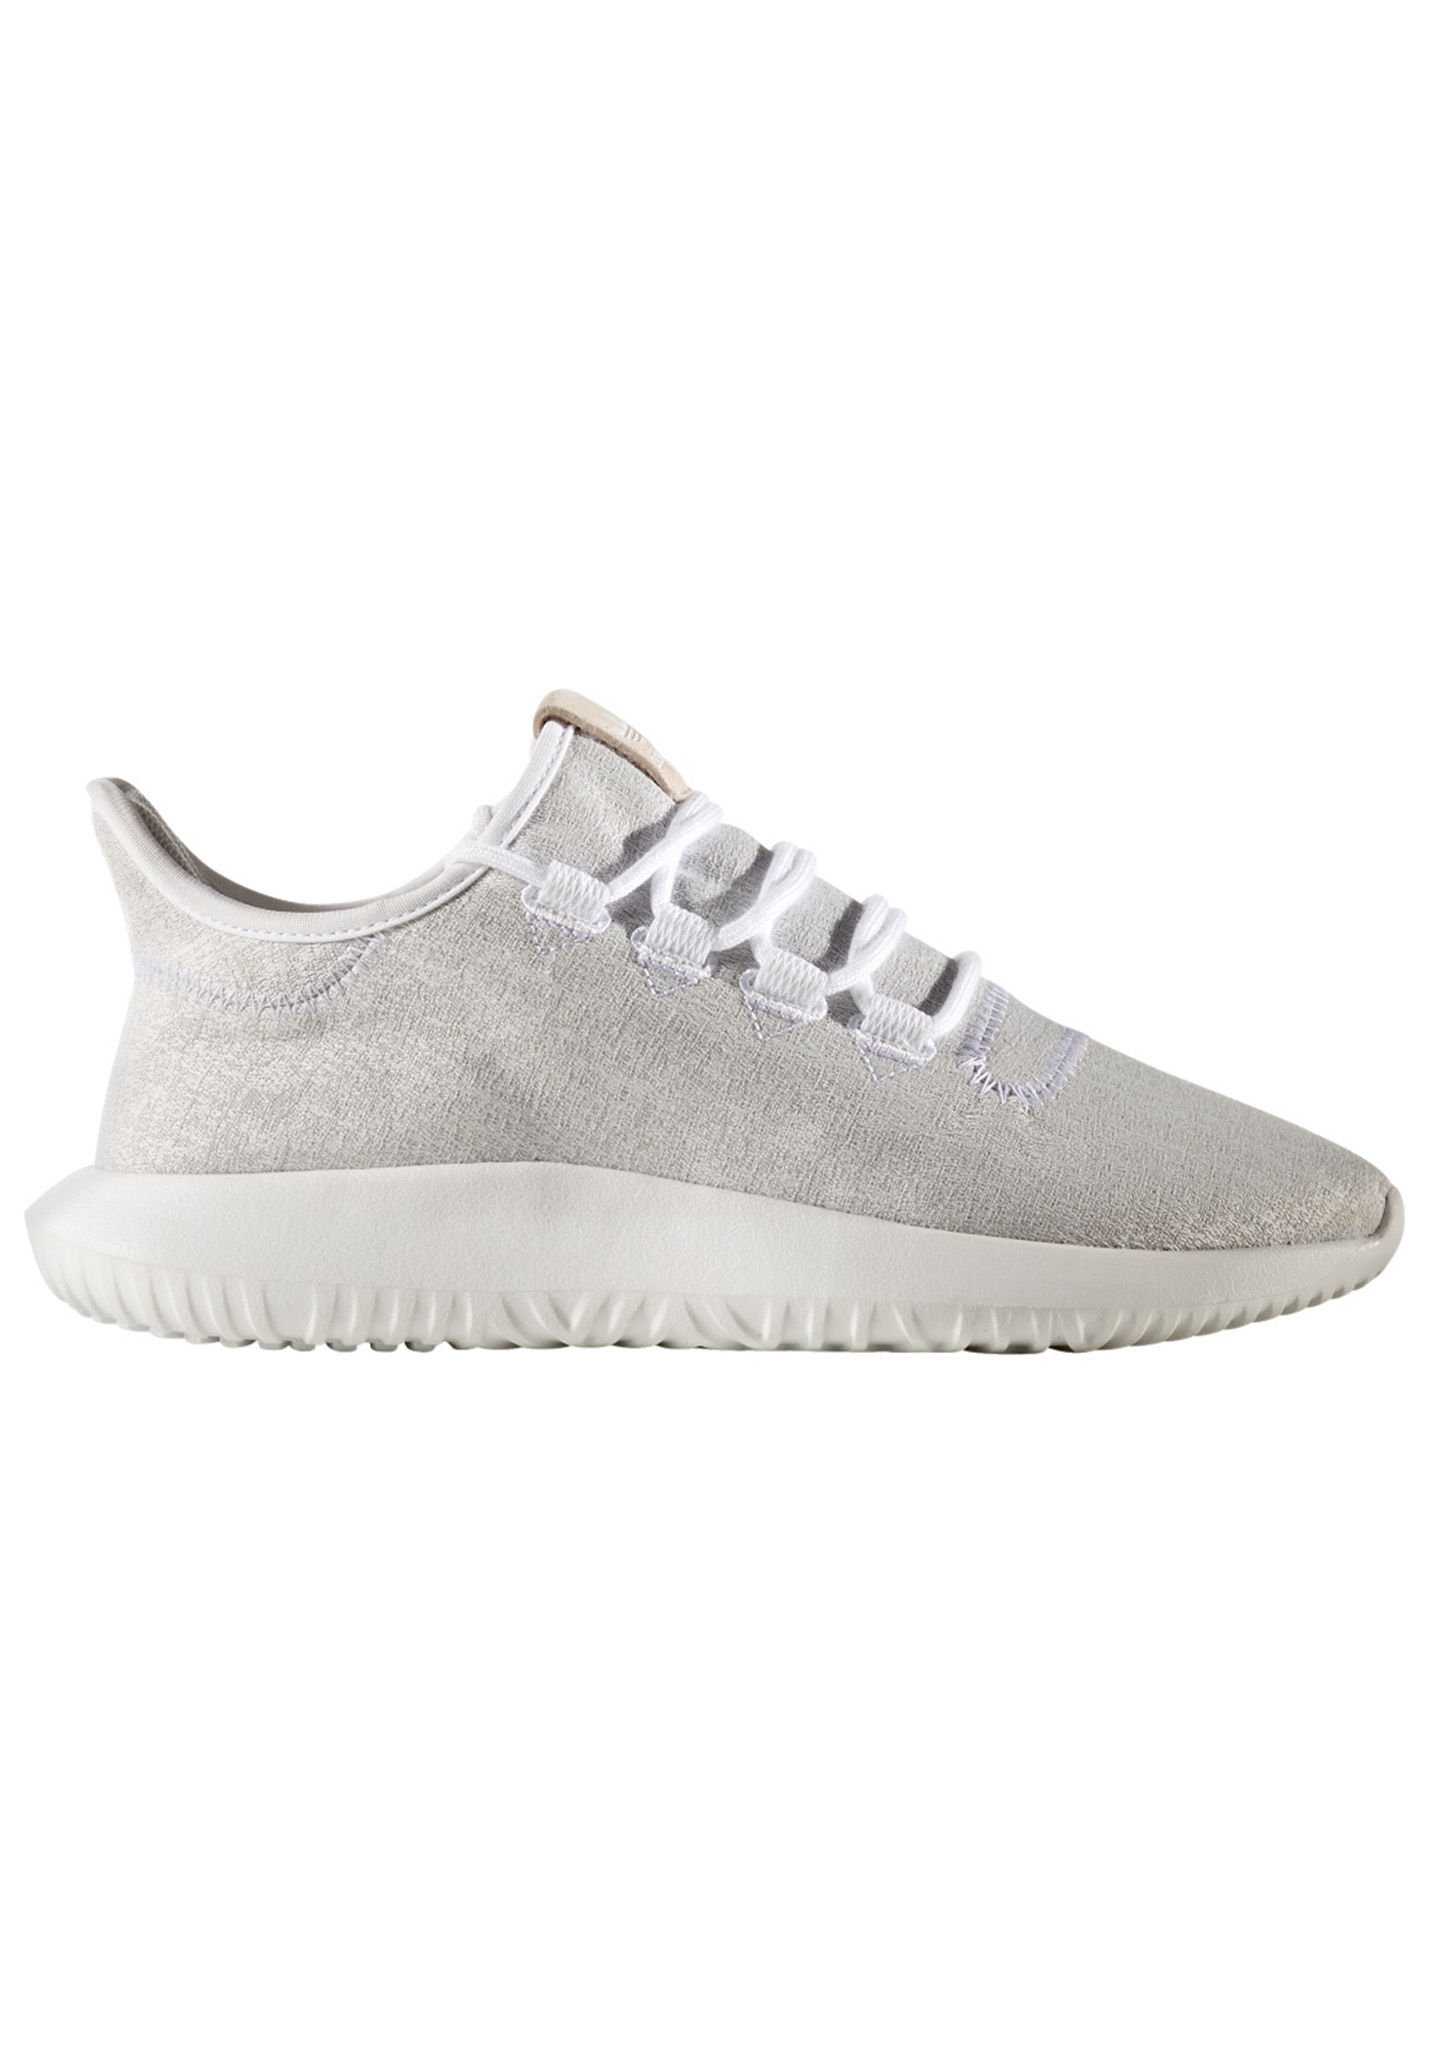 ADIDAS ORIGINALS Tubular Shadow - Sneakers